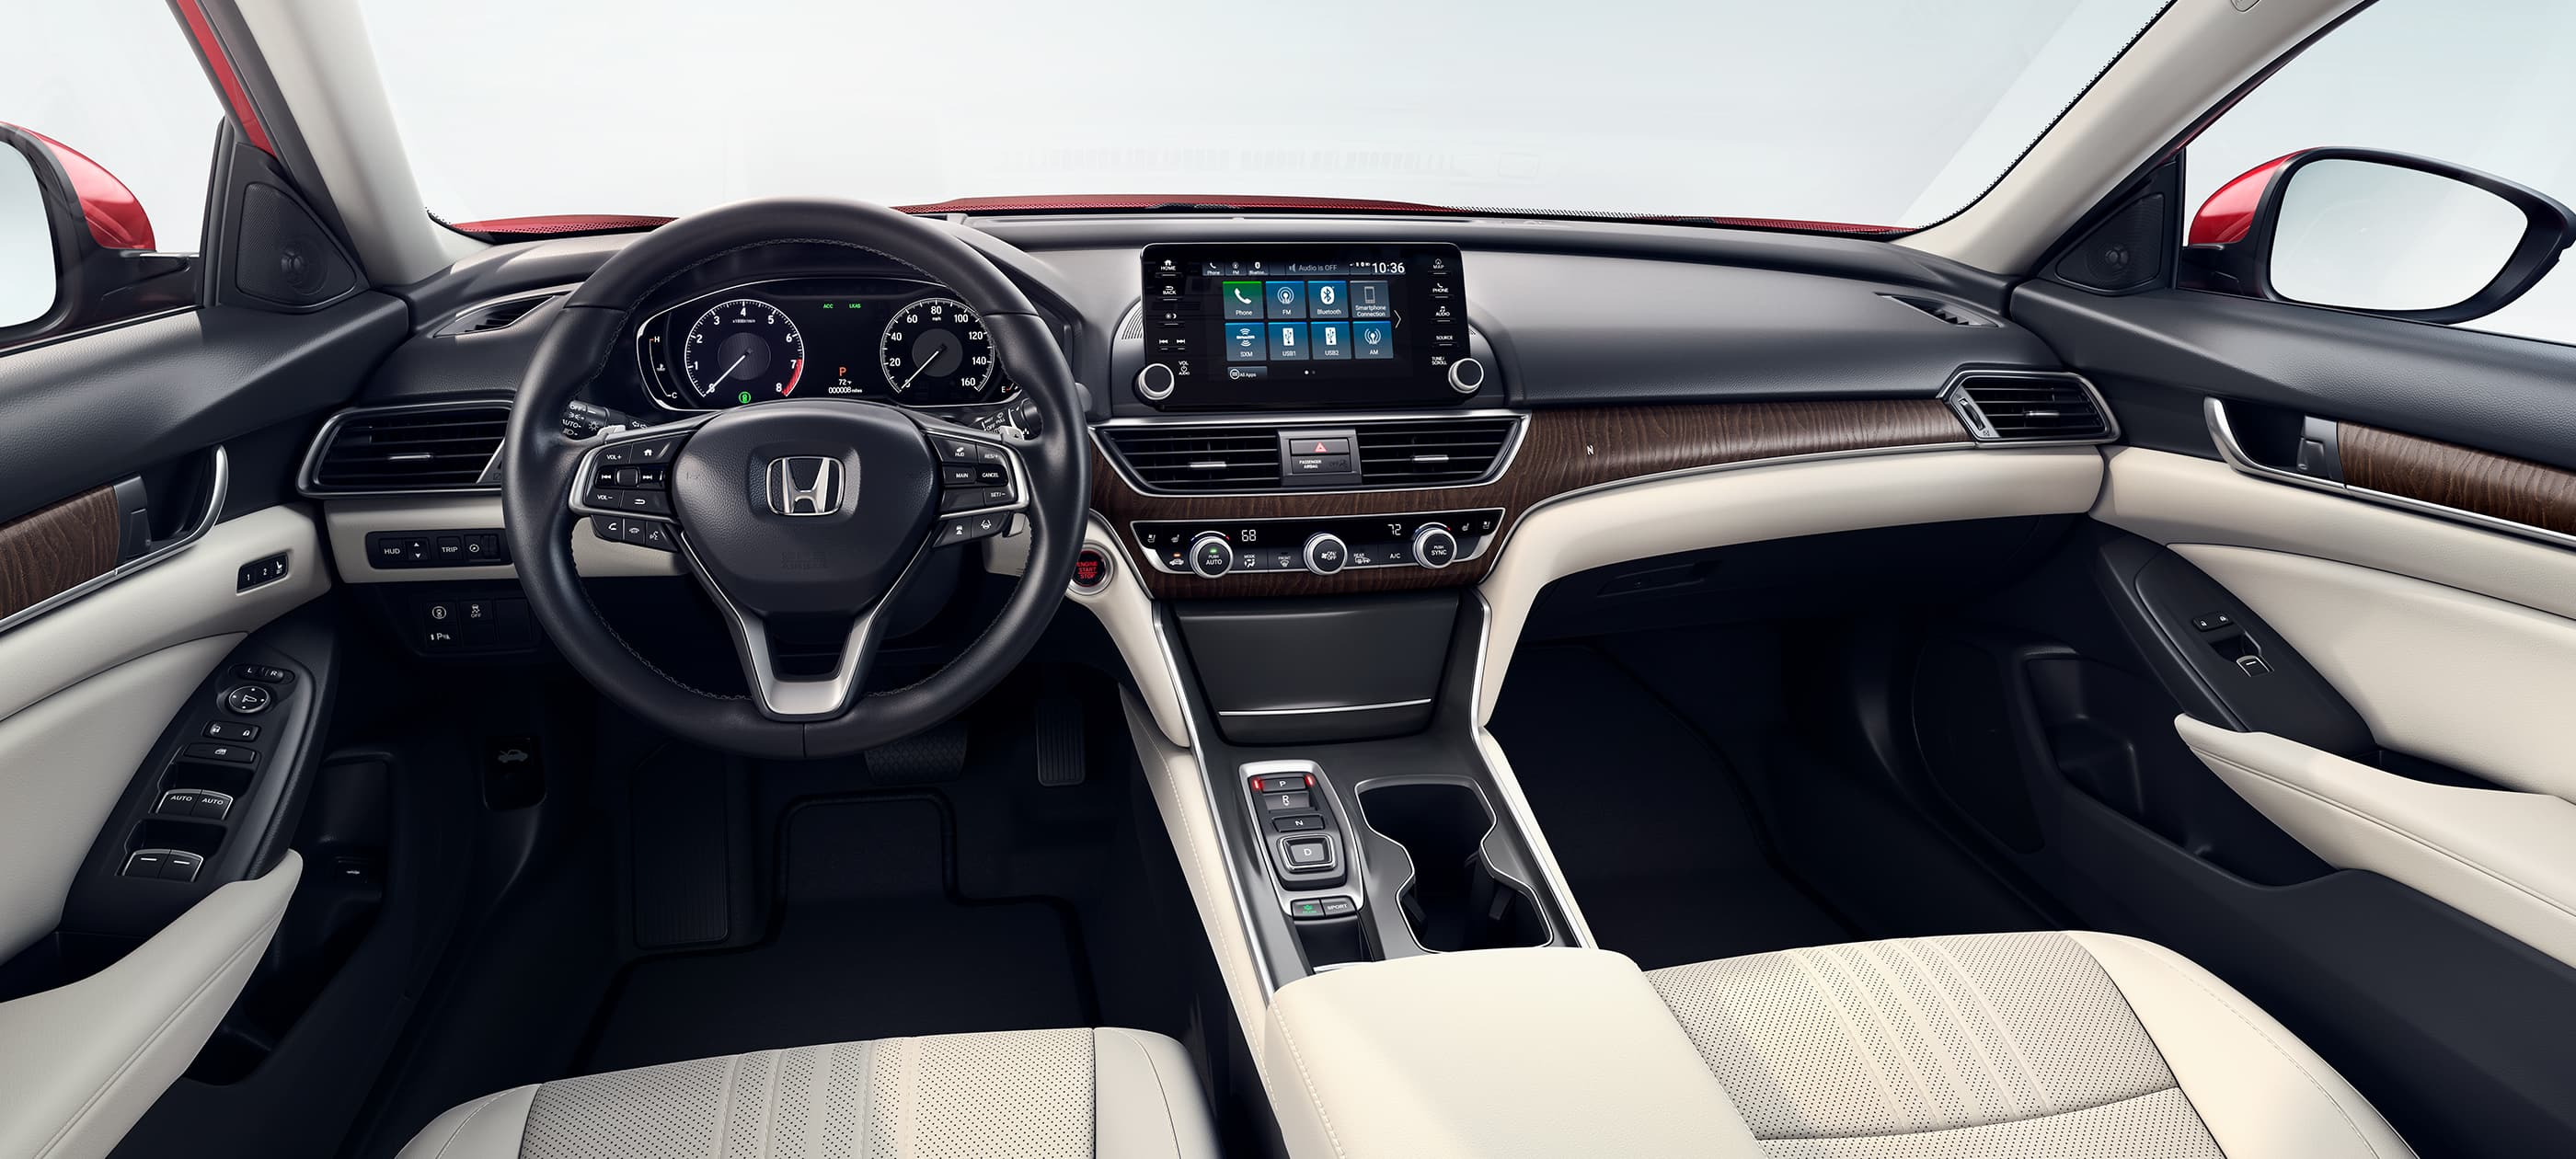 Interior view of steering wheel and dashboard in the 2020 Honda Accord Touring 2.0T with Ivory Leather.